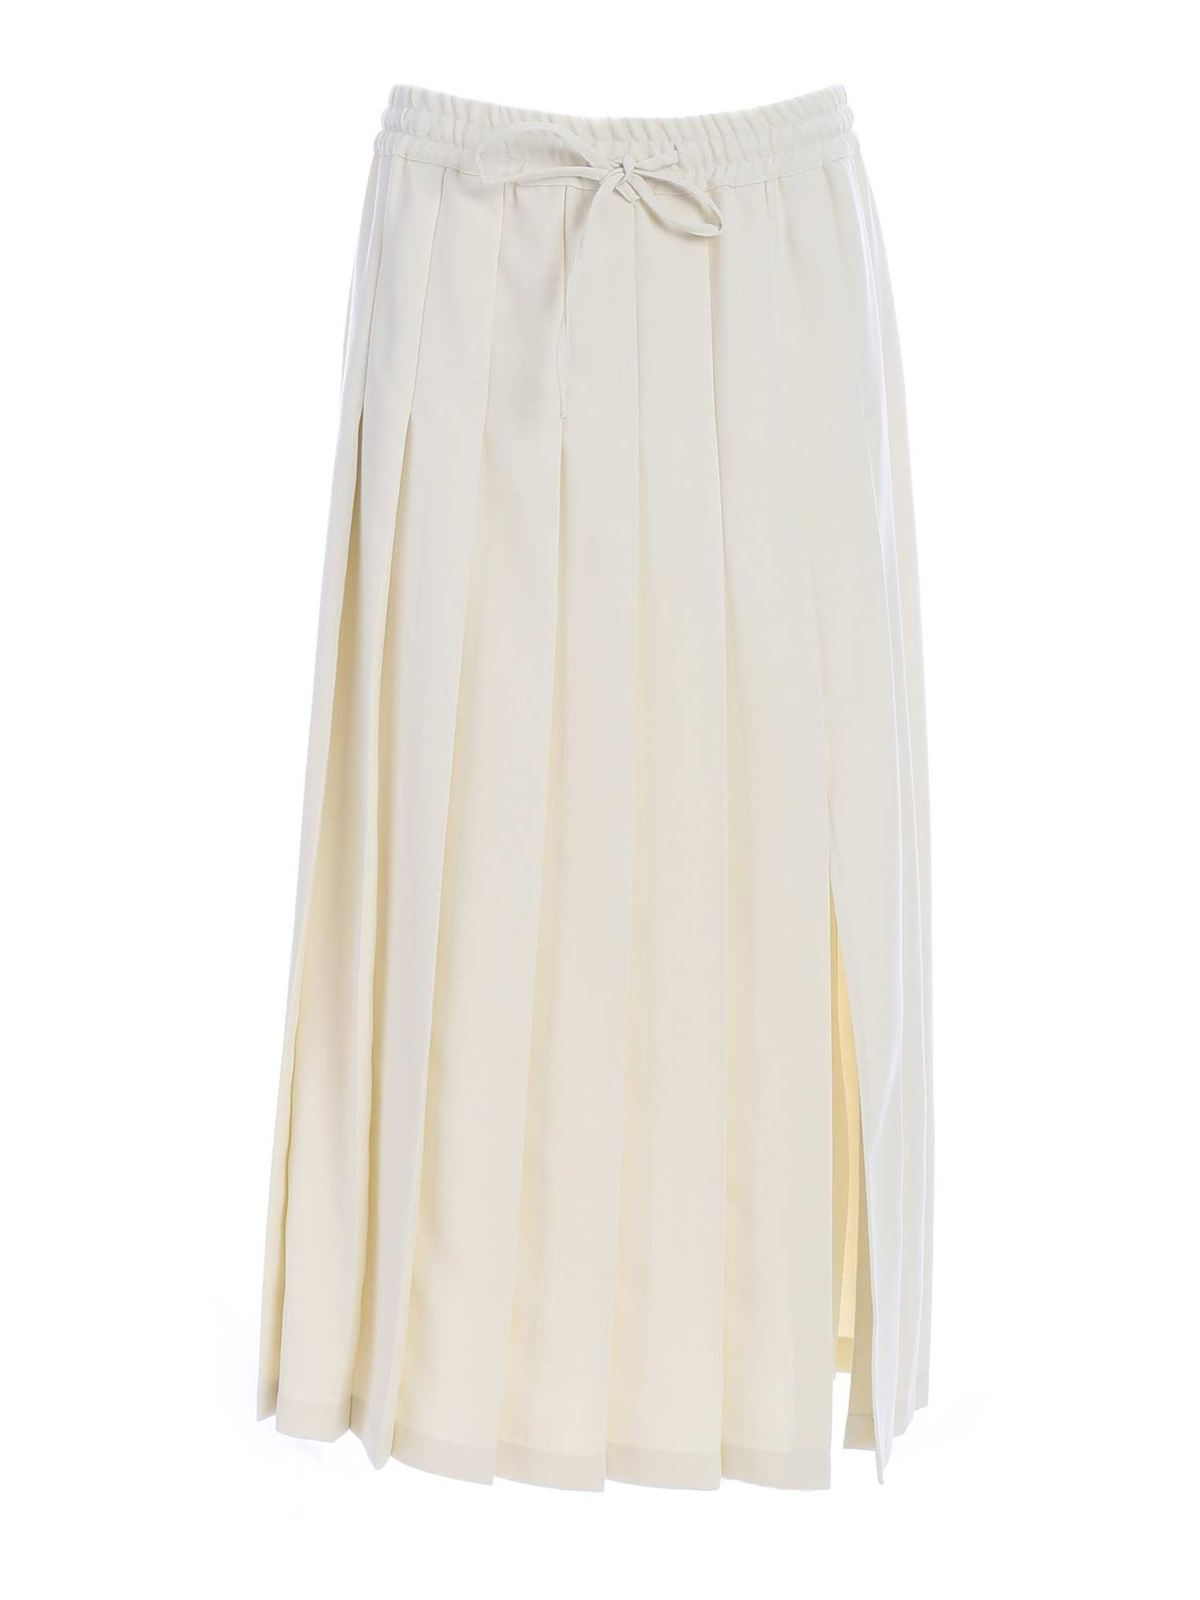 Semicouture MARLYN SKIRT IN IVORY COLOR